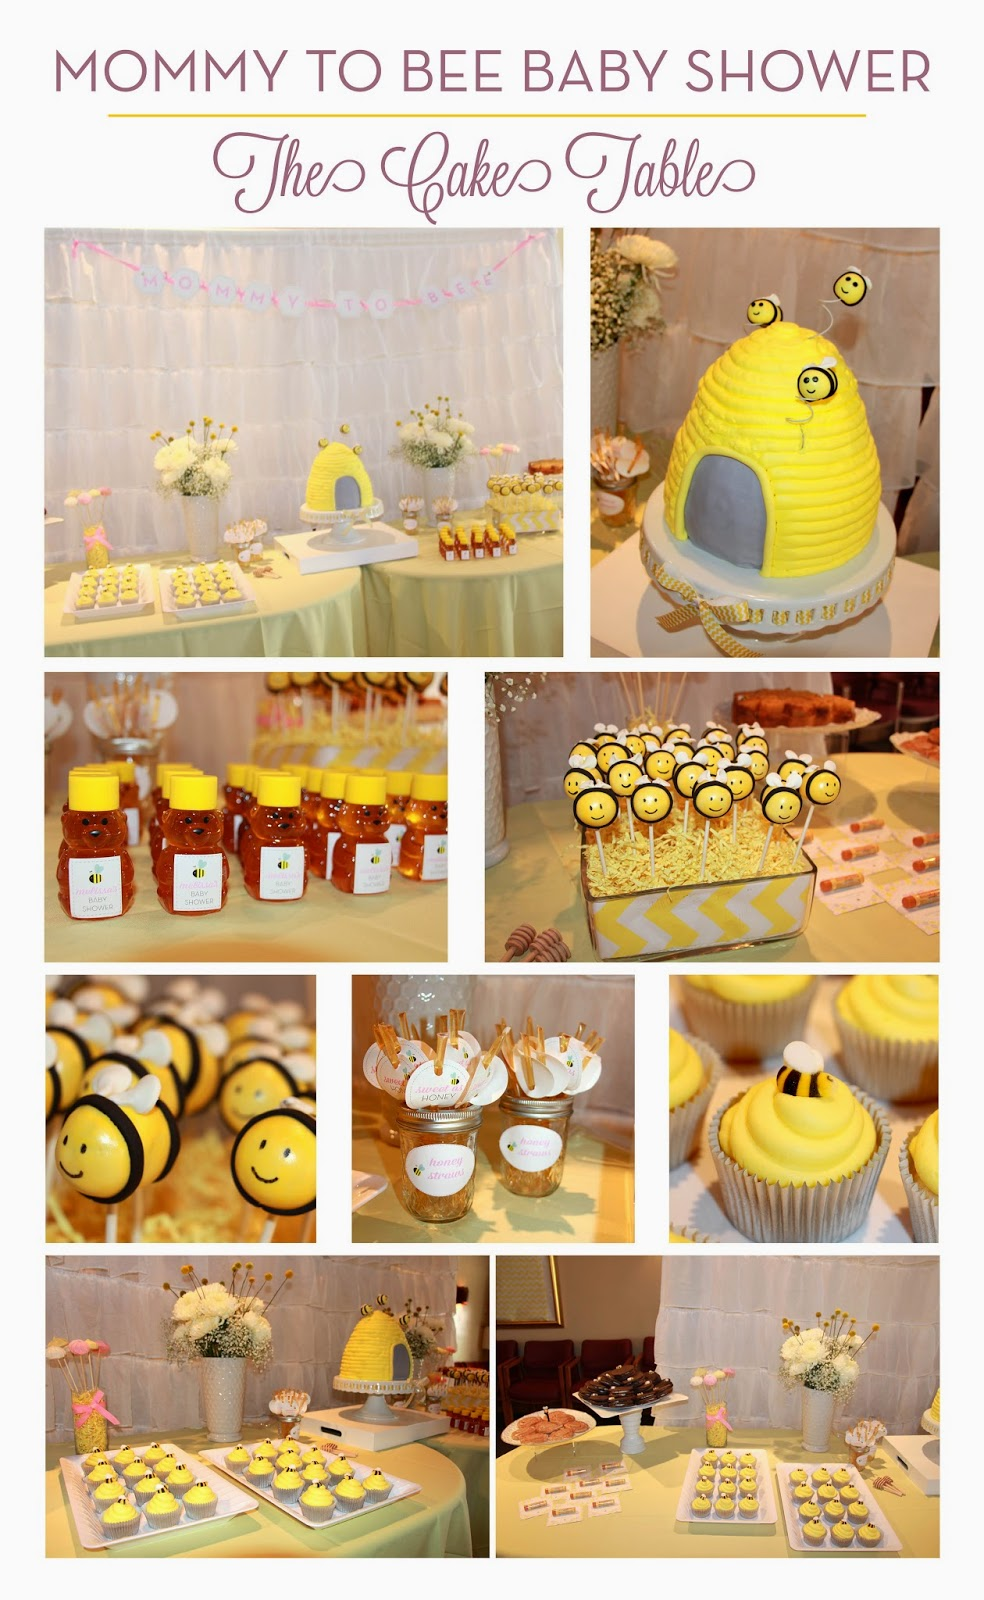 ... Bee Cake Pops, Honeybuns, Merengues On Sticks, Honey Straws, A Big  Beehive Cake And Much More! Cake, Cupcakes And Cake Pops By Thelmau0027s Cakes.